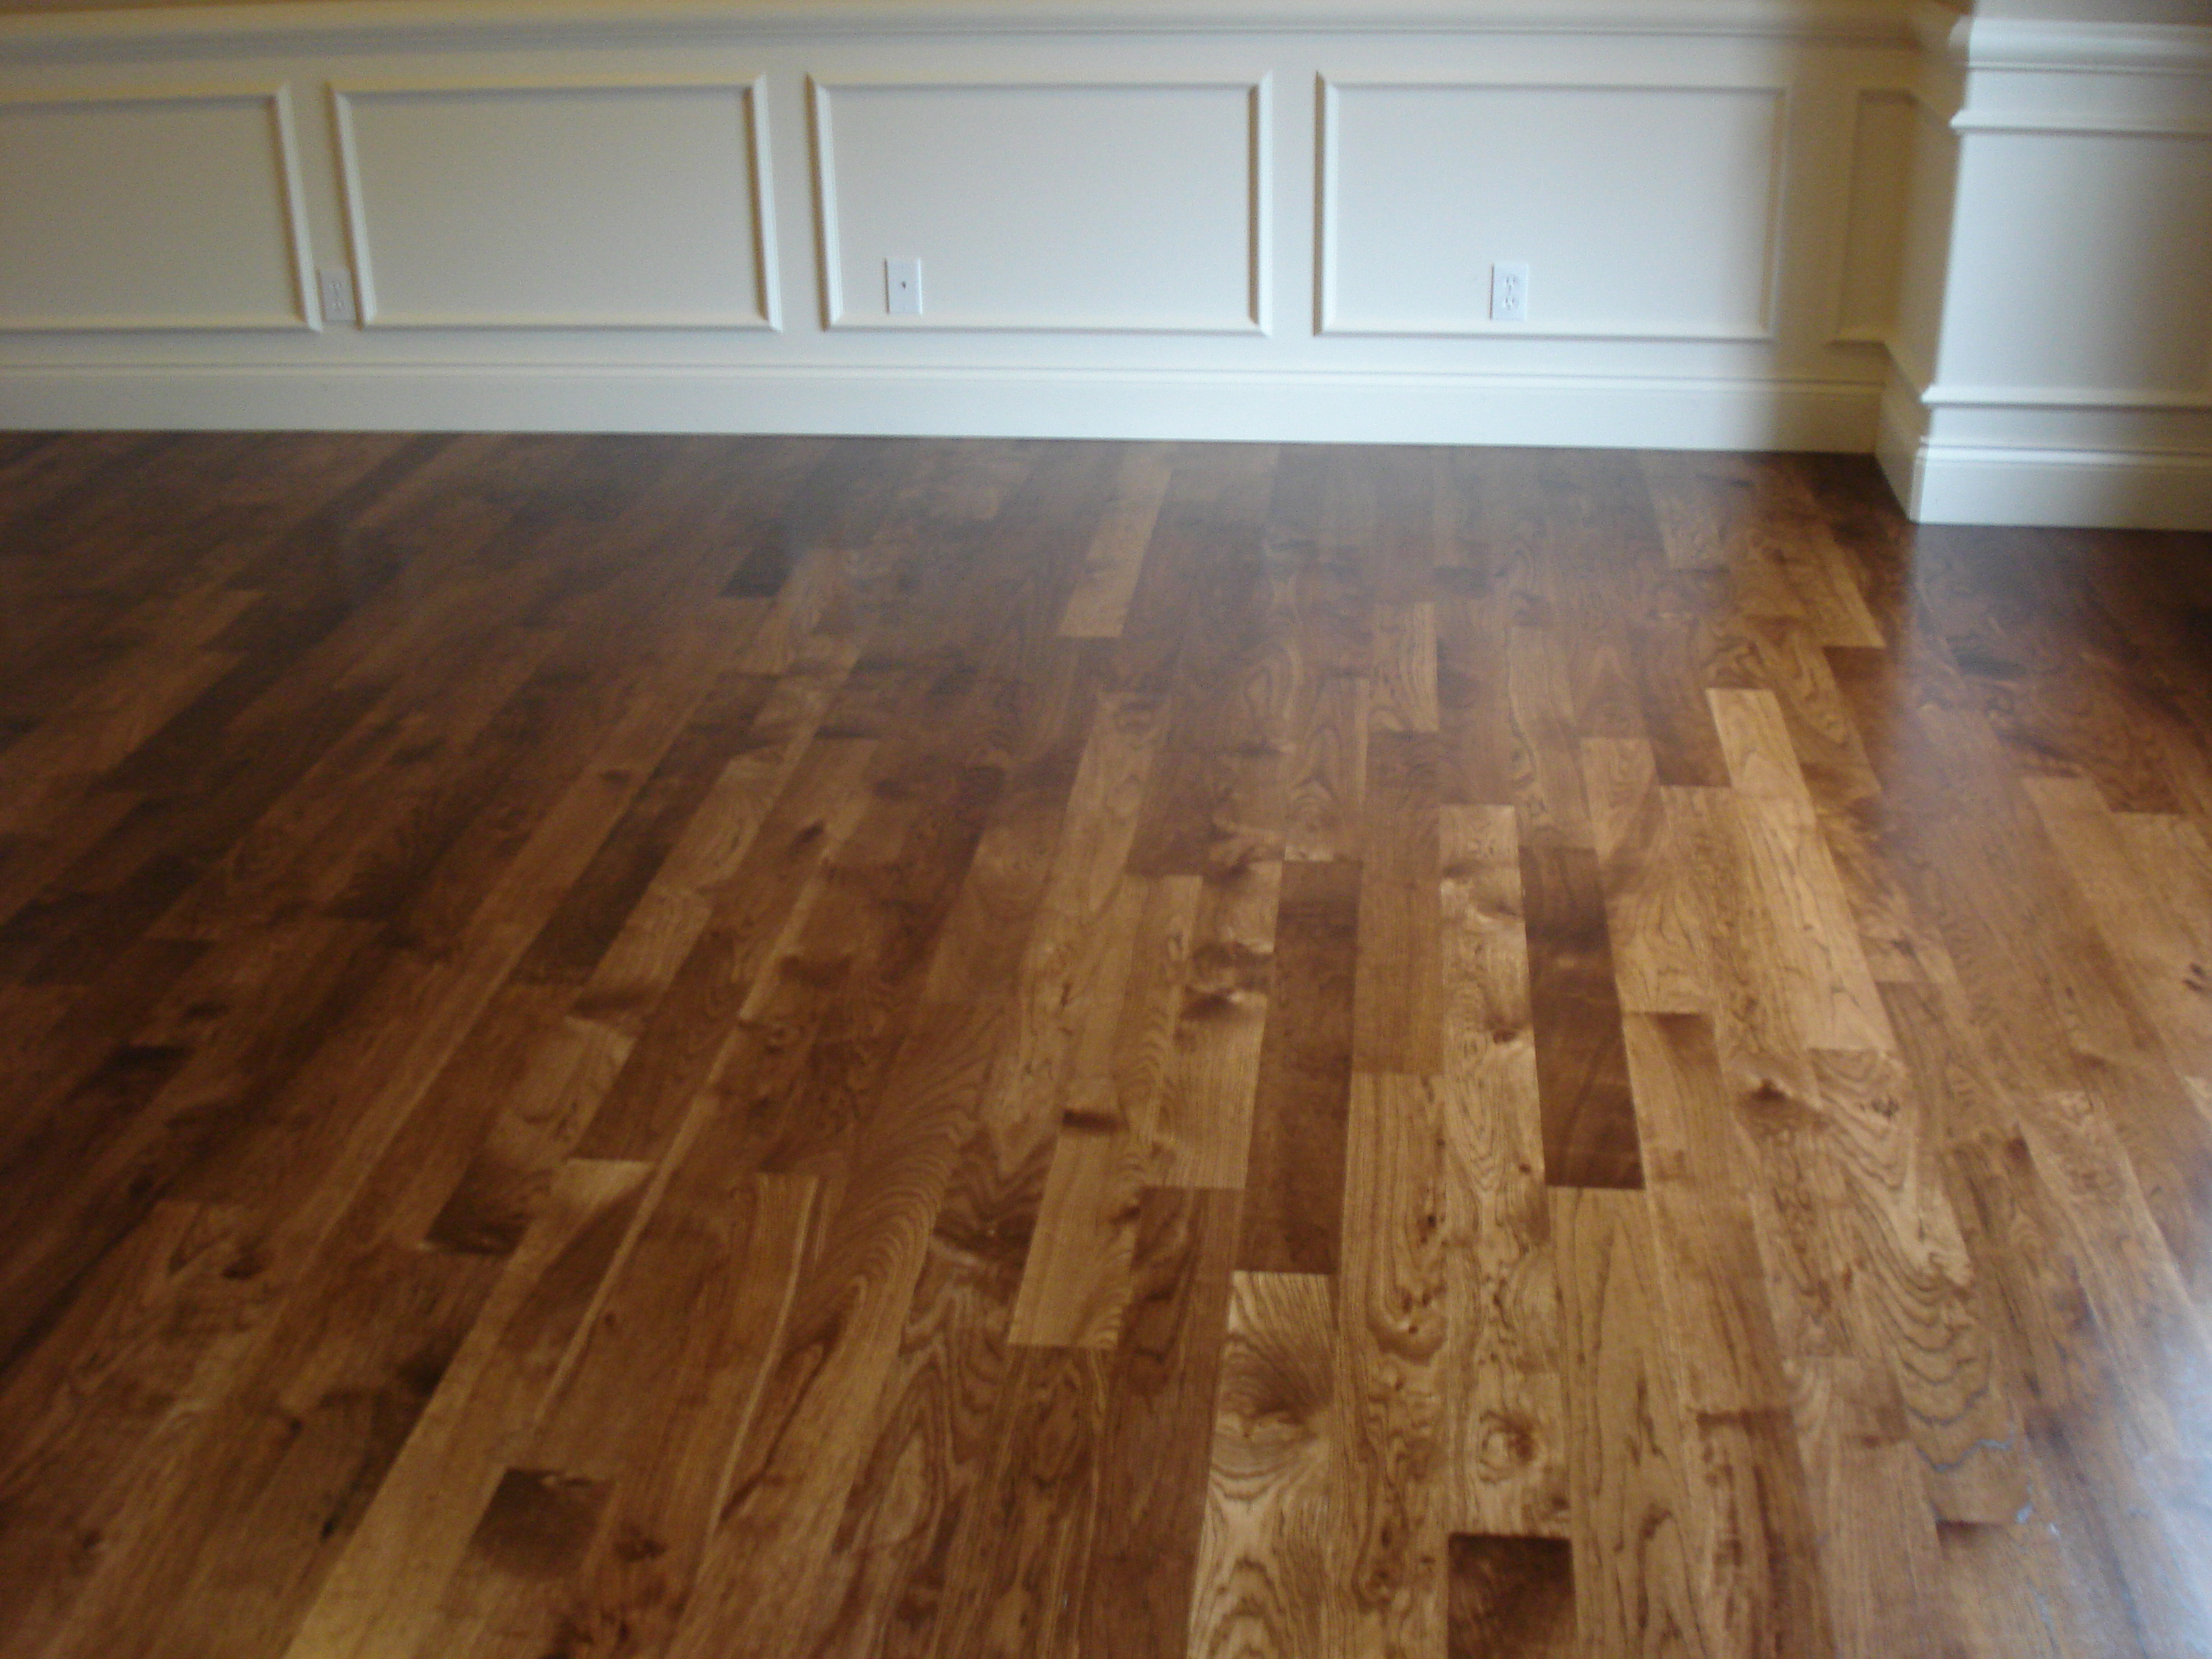 Carsons Custom Hardwood Floors  Utah Hardwood Flooring  Rooms - Hardwood floor images